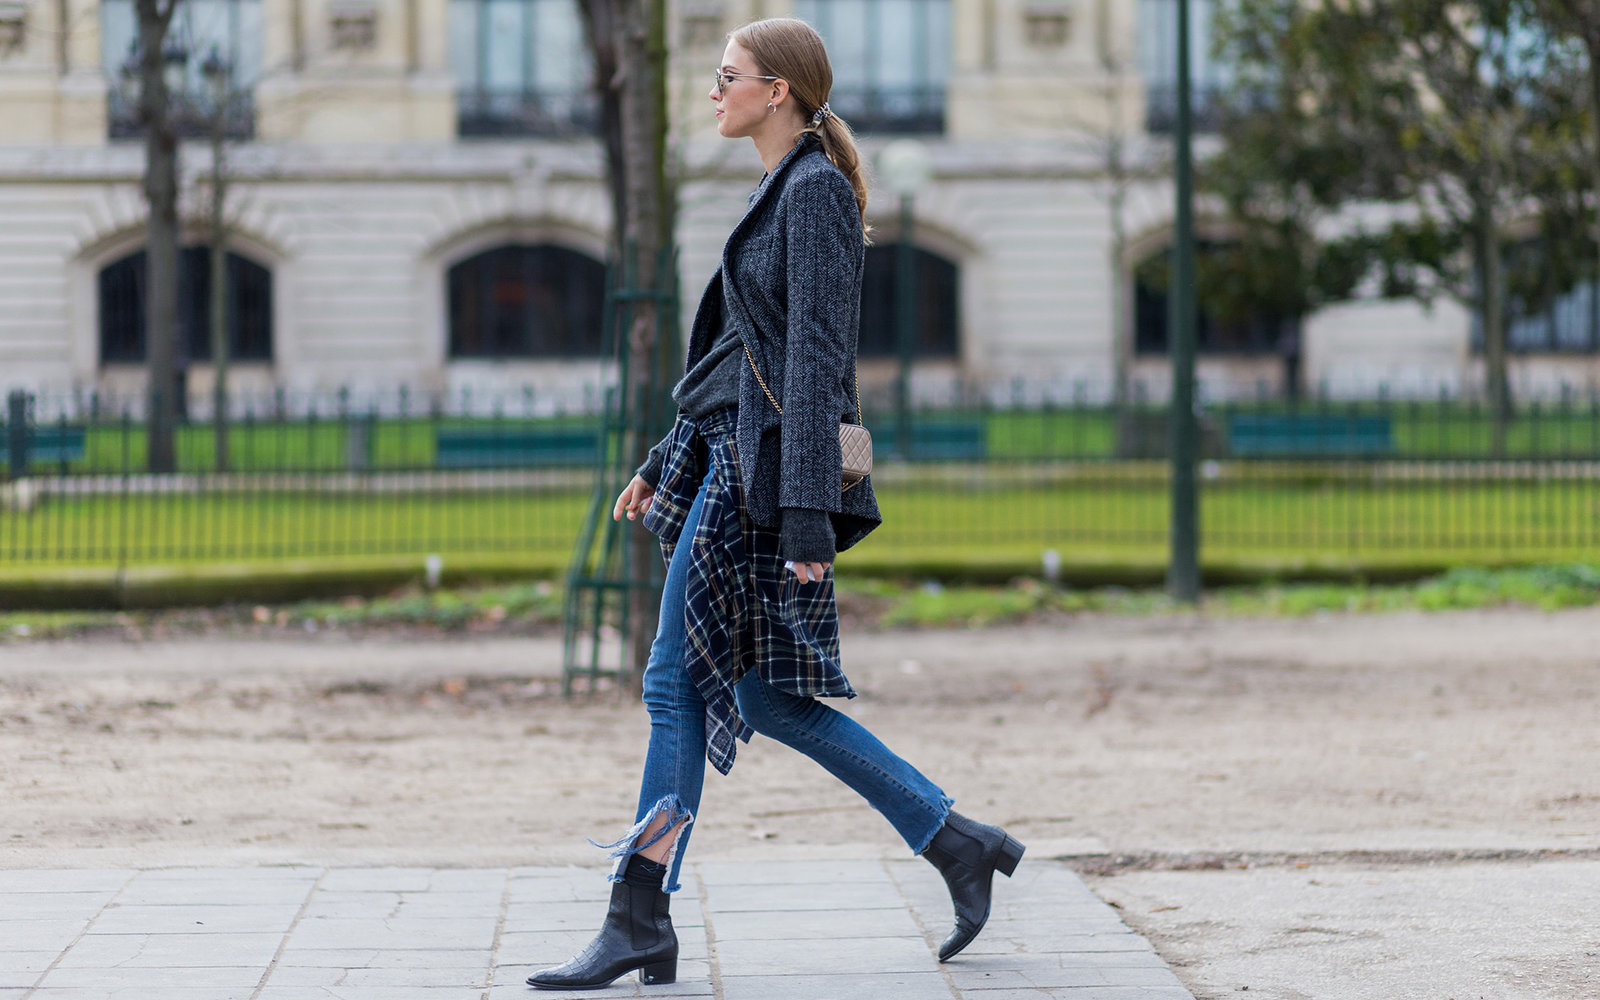 PARIS, FRANCE - January 26:  Fashion model Sasha Luss outside Chanel during the Paris Fashion Week -Haute Couture- Spring/Summer 2016 on January 26, 2016 in Paris, France.  (Photo by Christian Vierig/Getty Images)